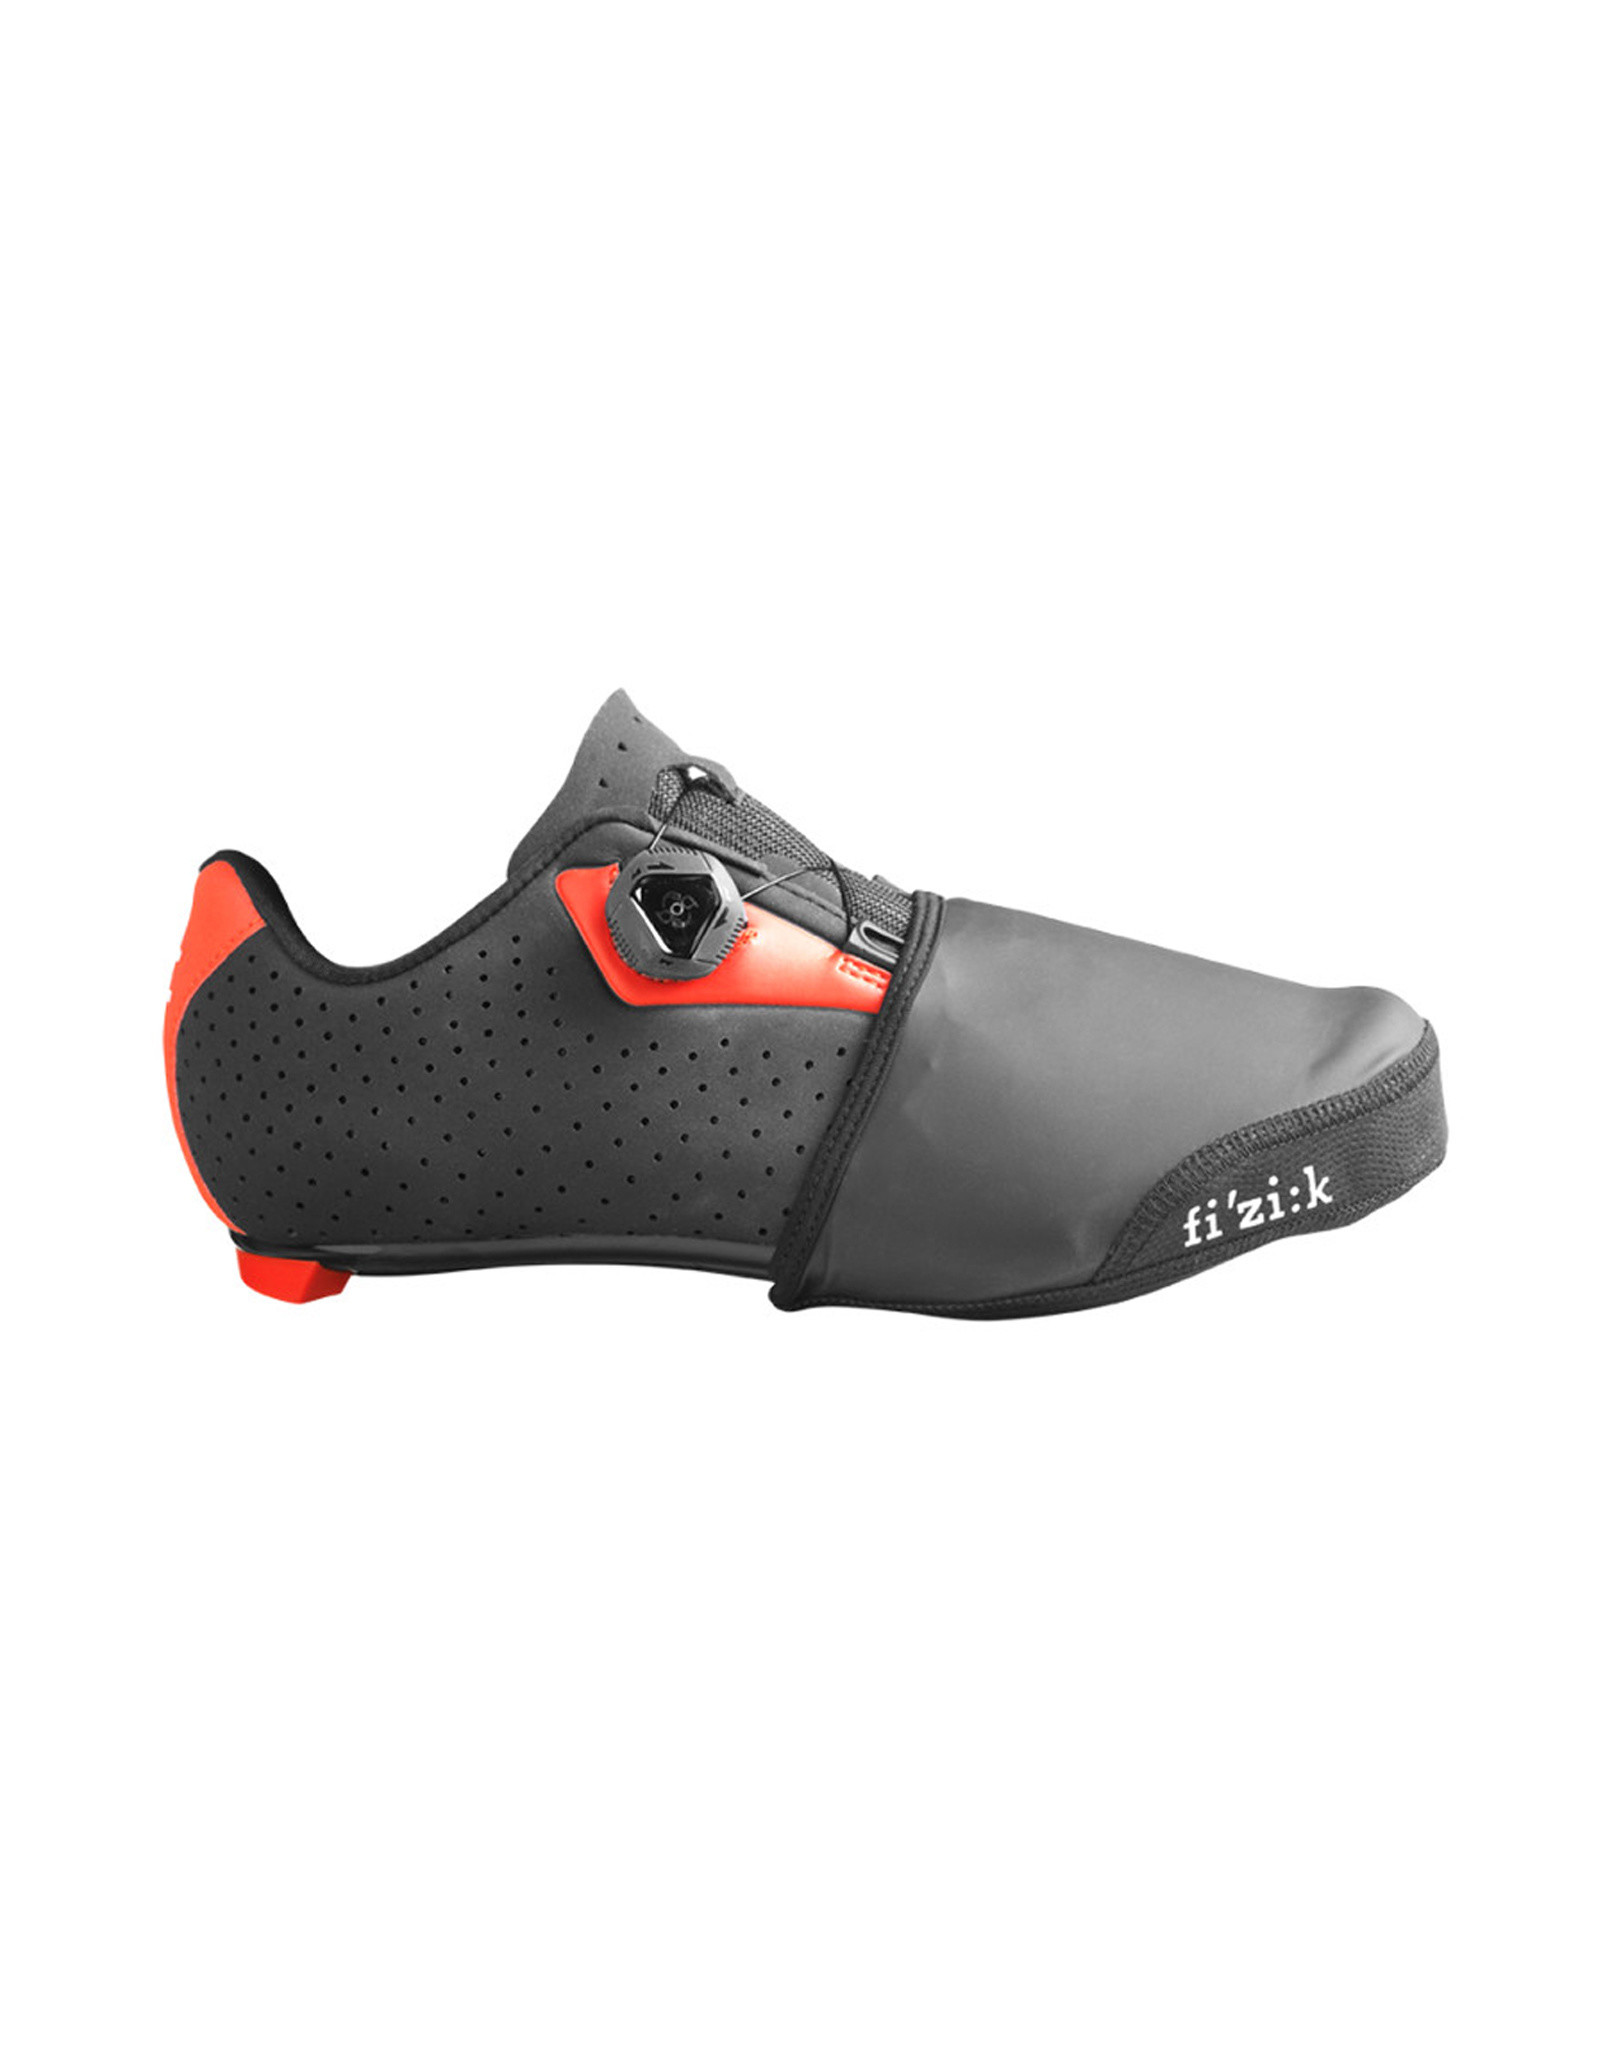 Fizik Fizik Toe Covers XS-S (36 - 40)